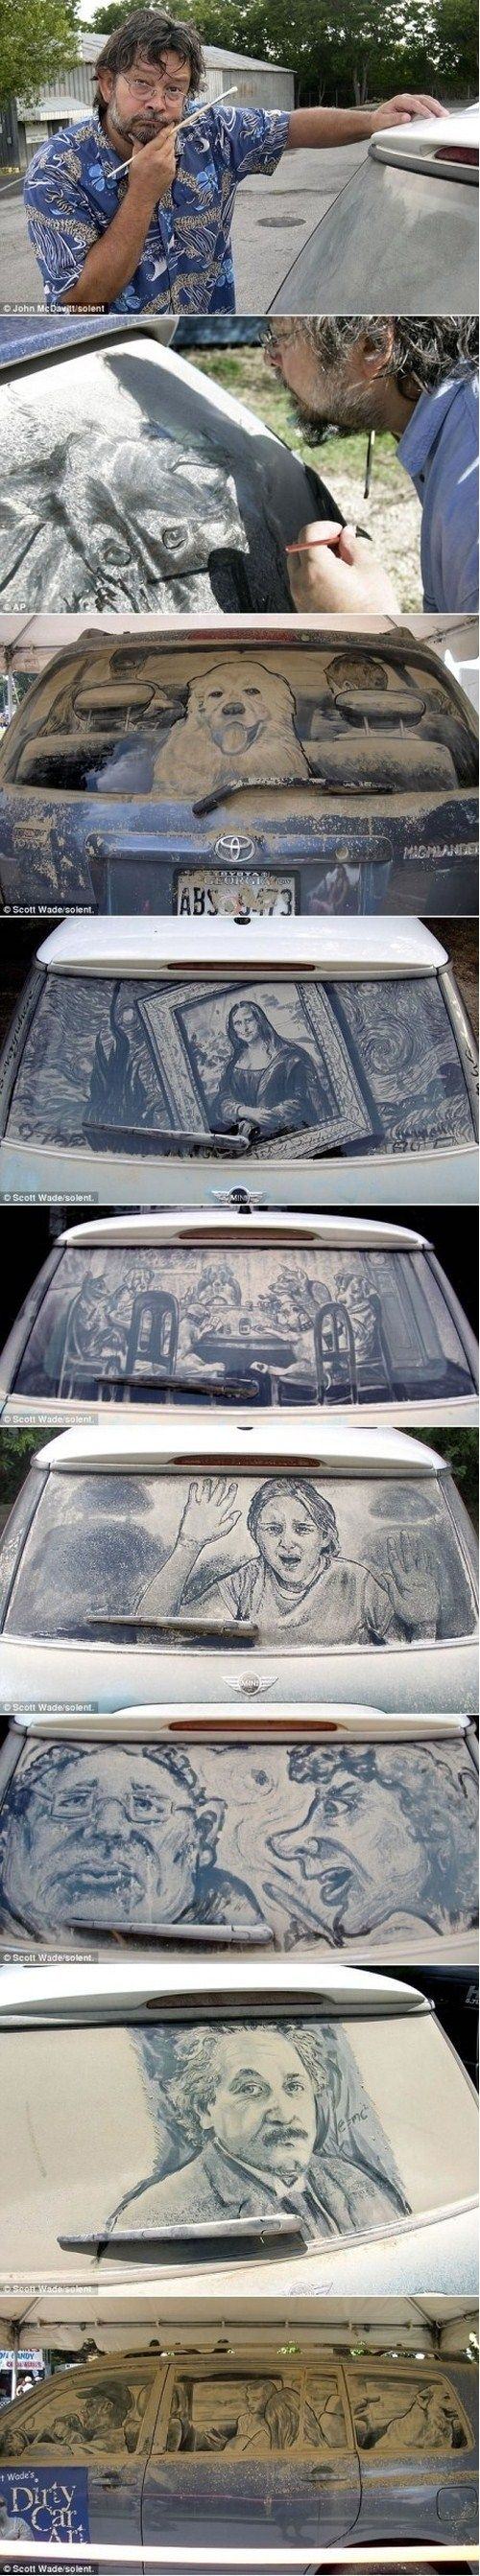 Dirty car art Ive missed my calling..